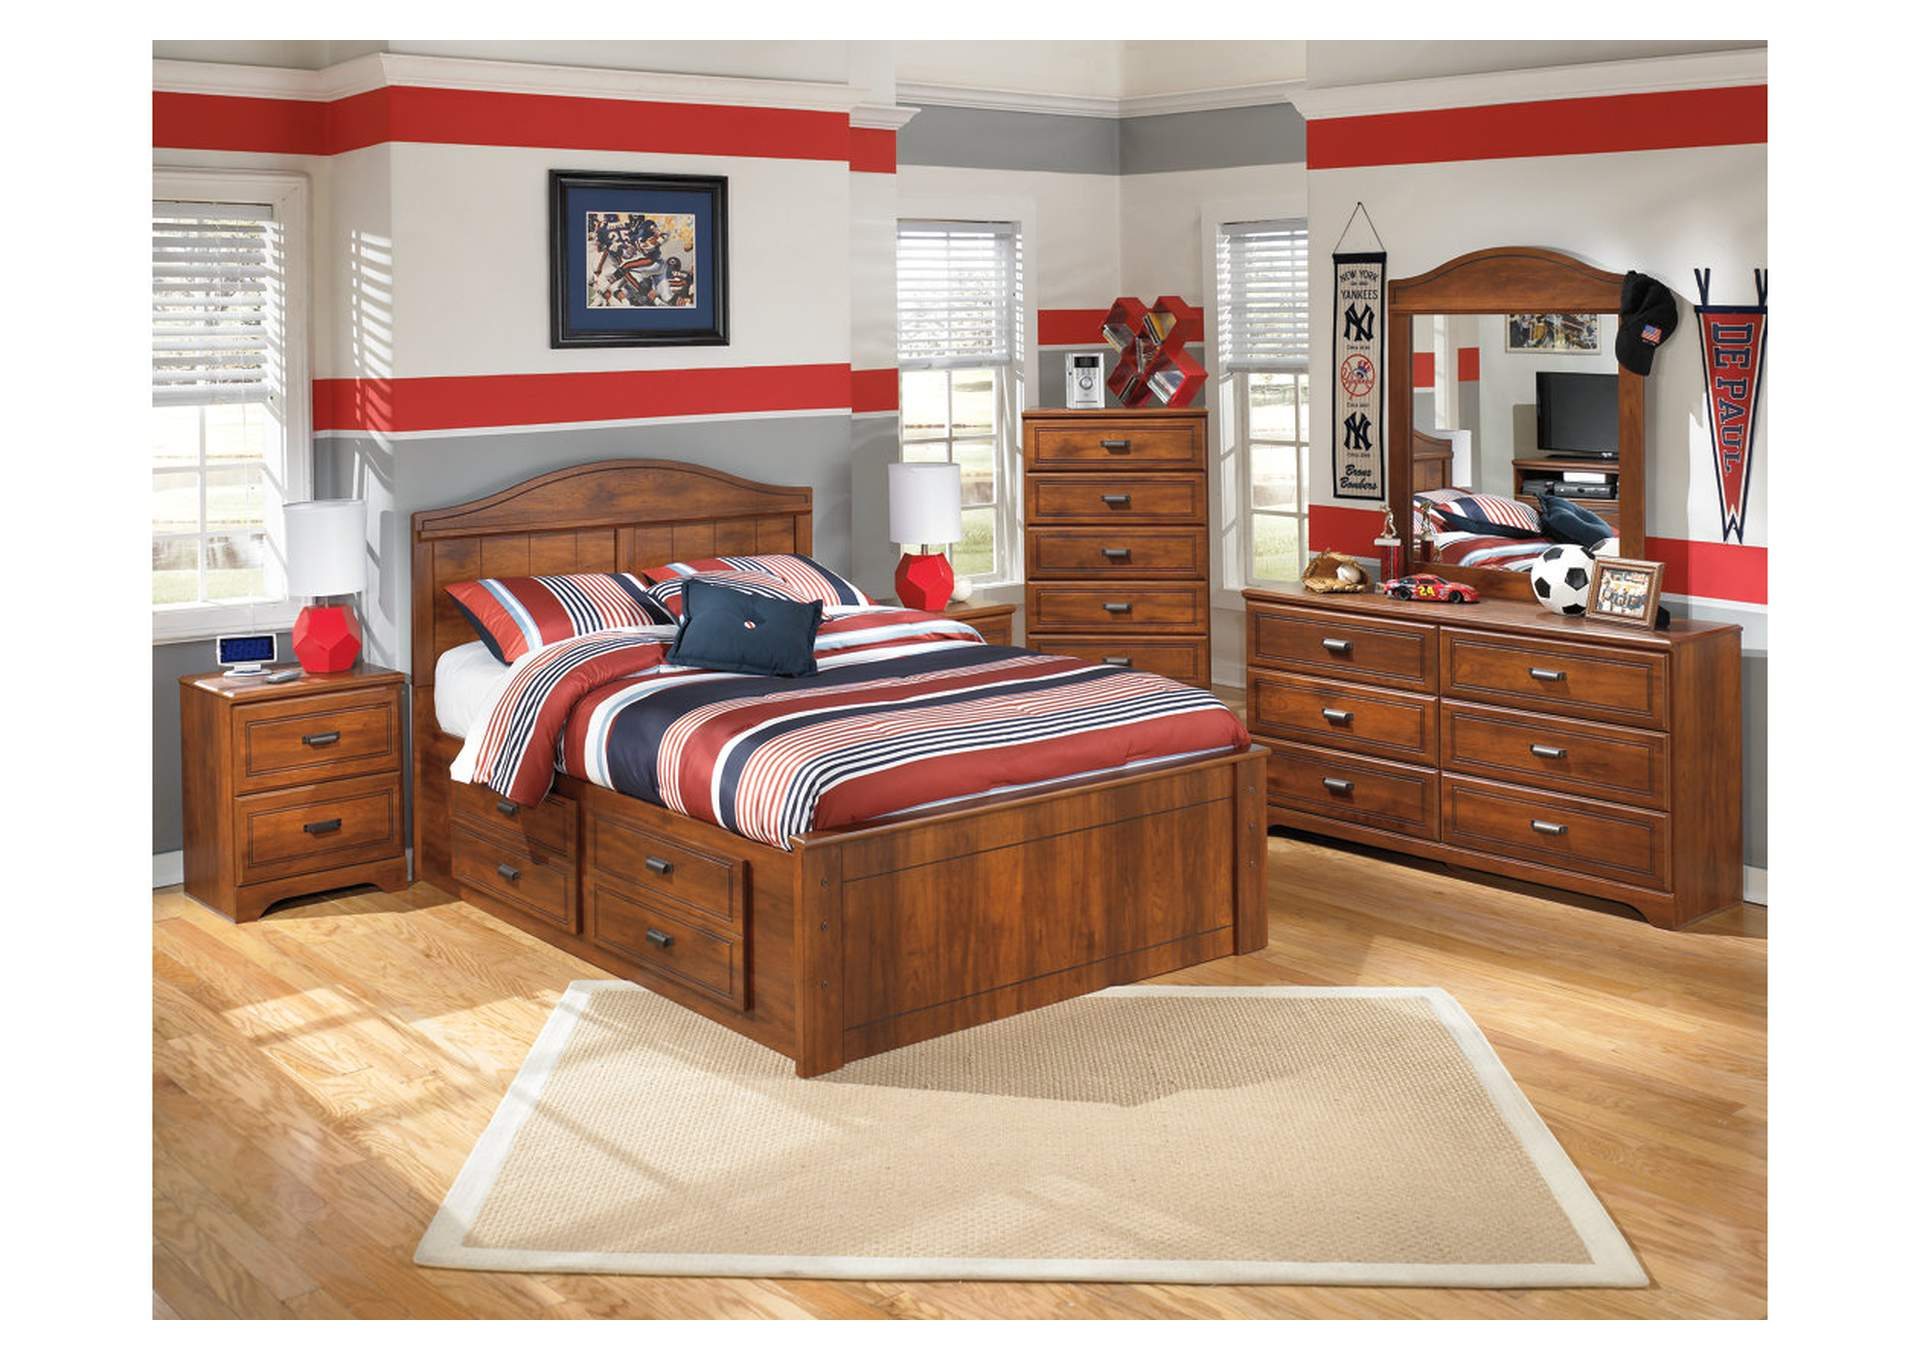 Barchan Full Panel Storage Bed w/Dresser, Mirror, Drawer Chest & Nightstand,Signature Design By Ashley